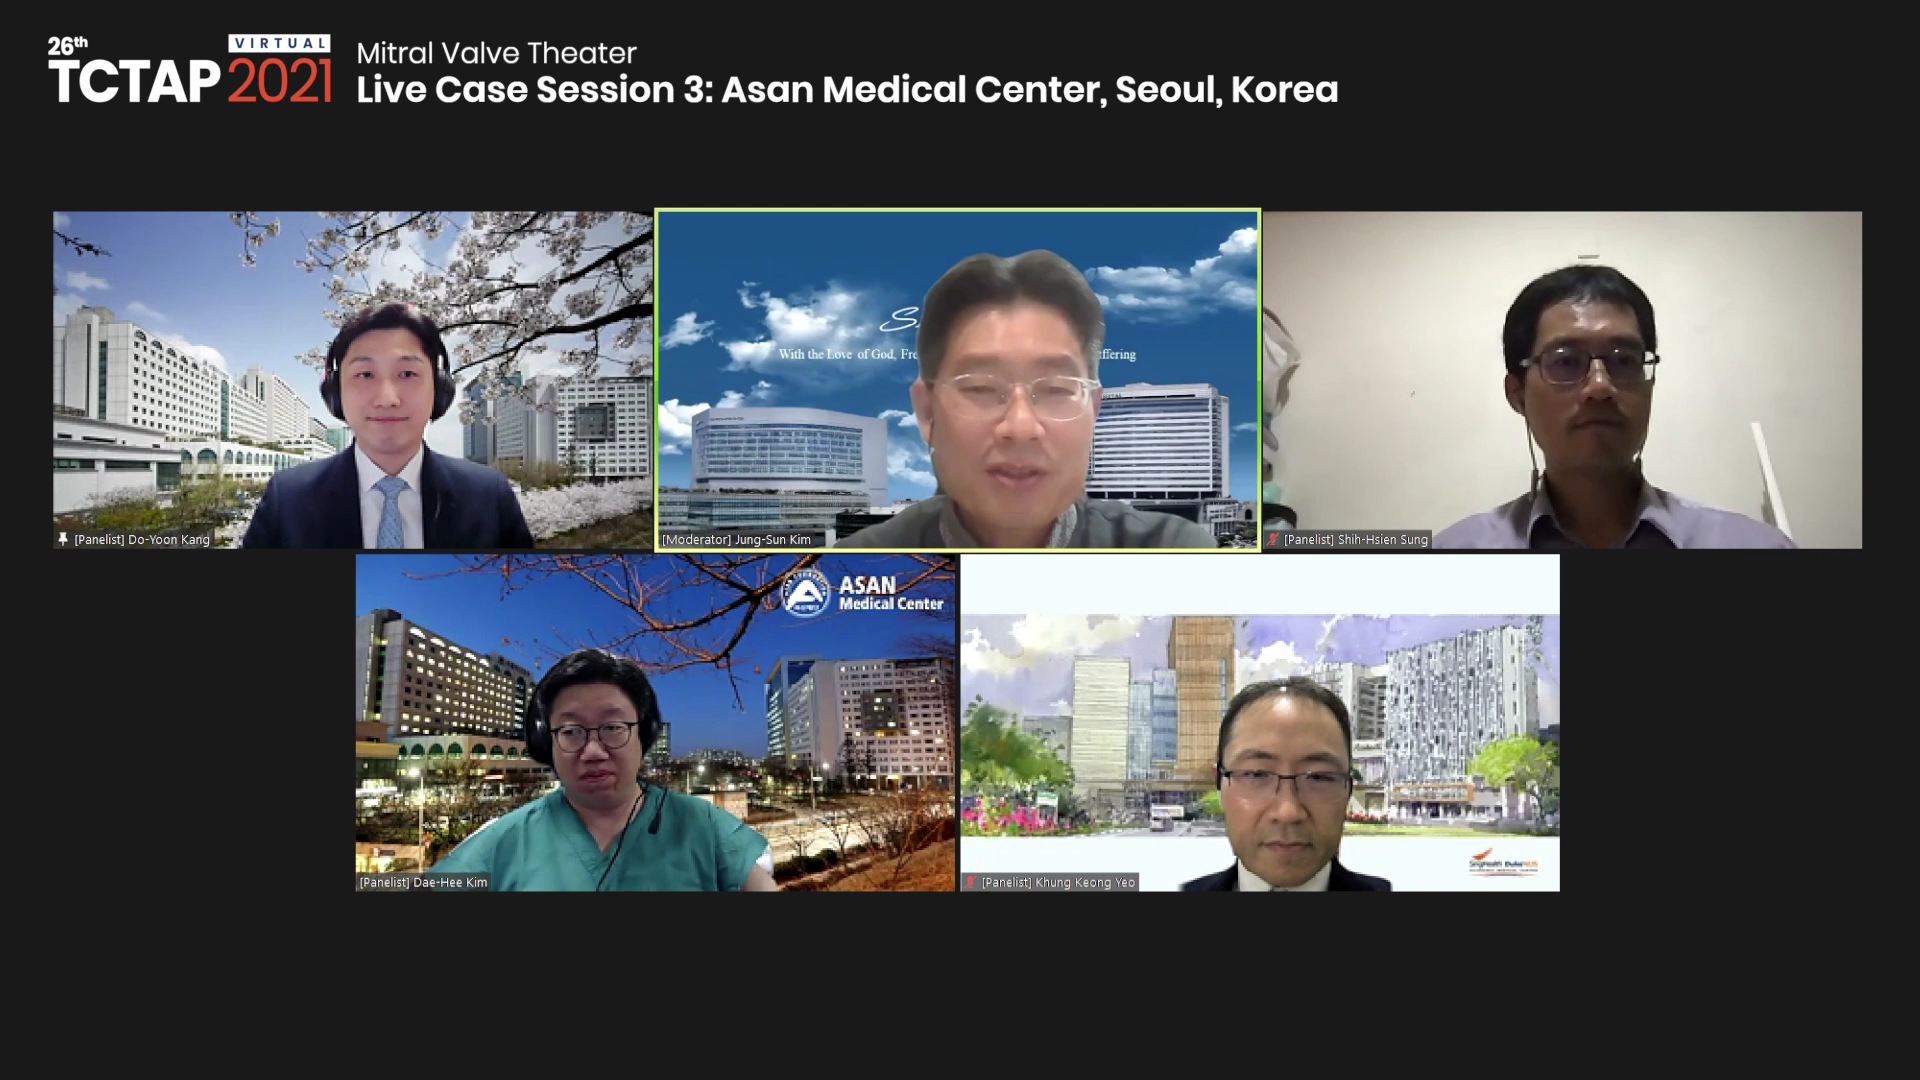 [TCTAP 2021 Virtual] Mitral Valve Theater - Live Case Session 3